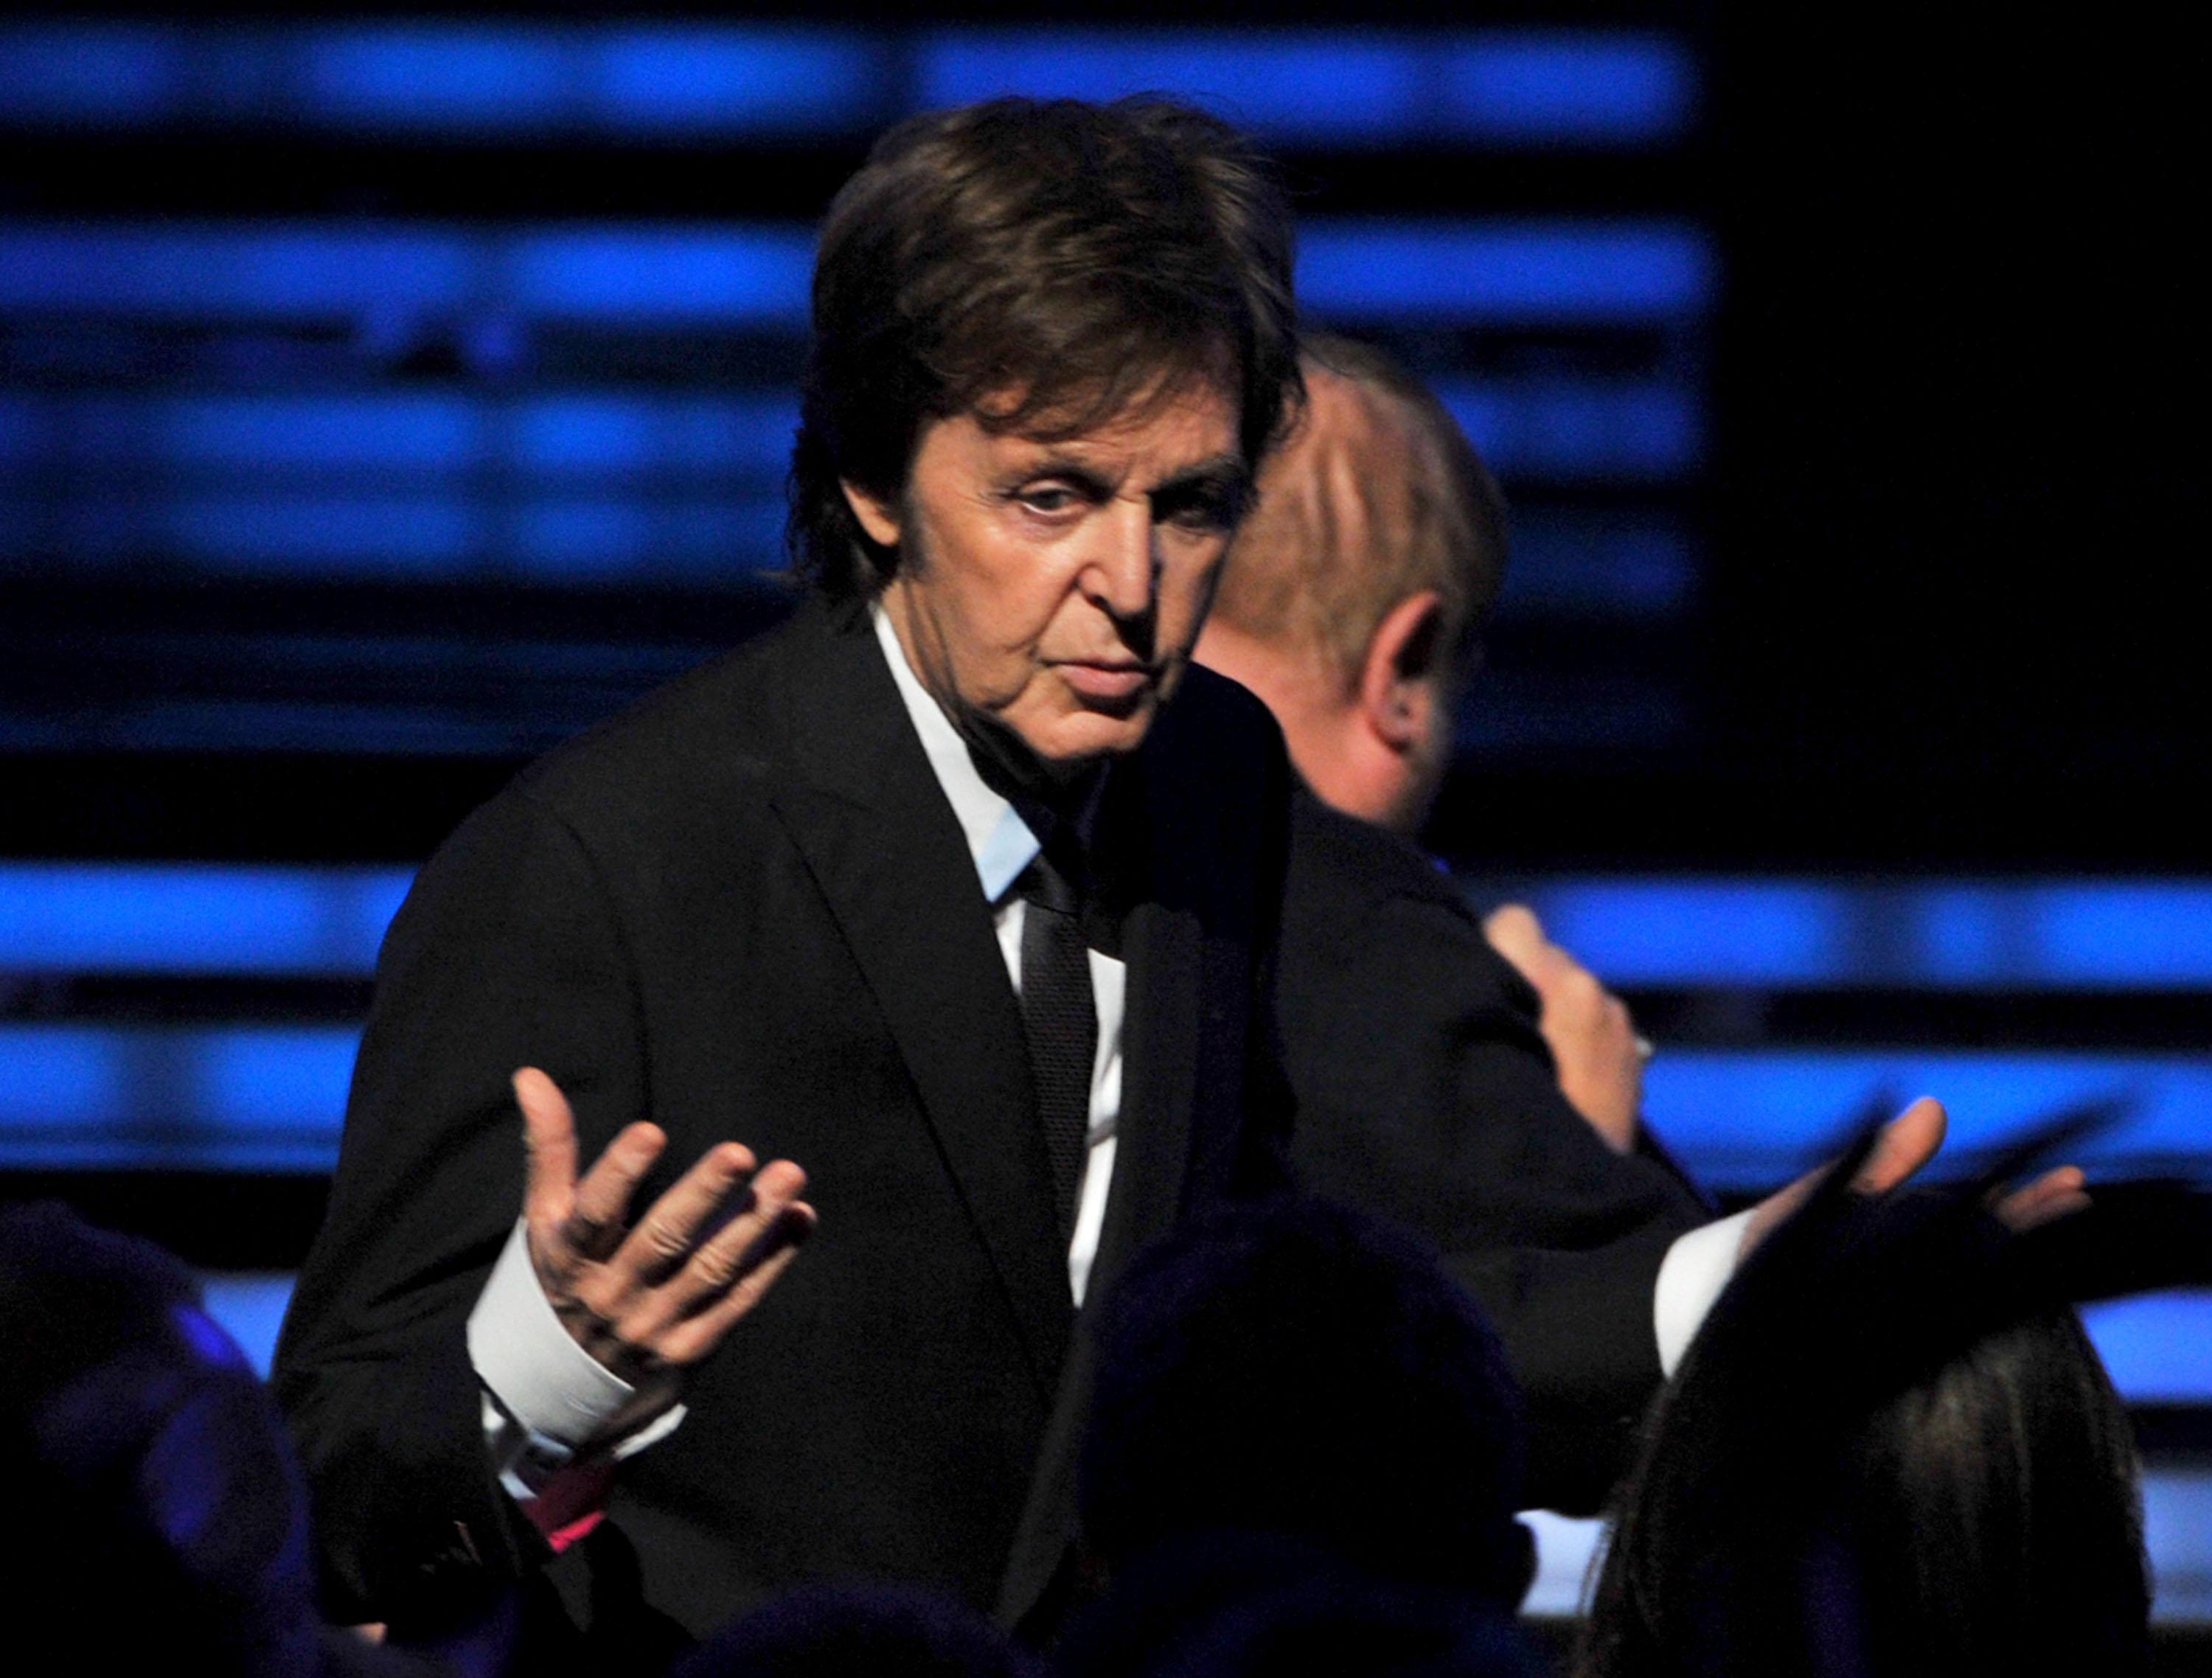 Paul McCartney was onstage at the Grammys.